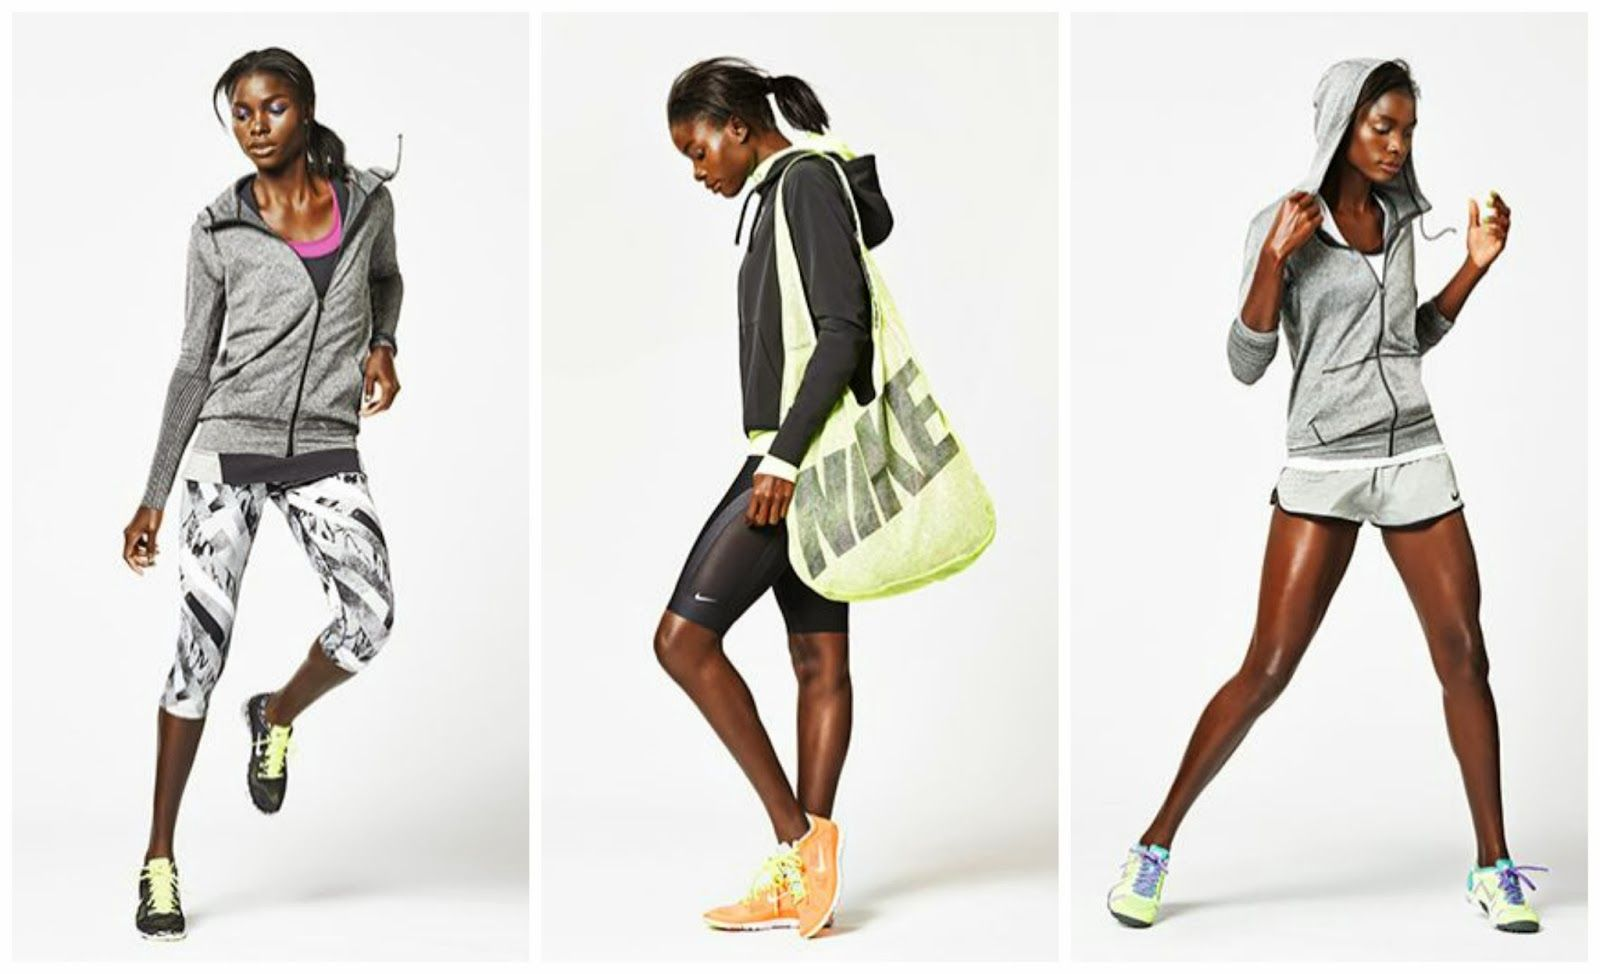 Nike Women Clothing 2014 Images Galleries With A Bite